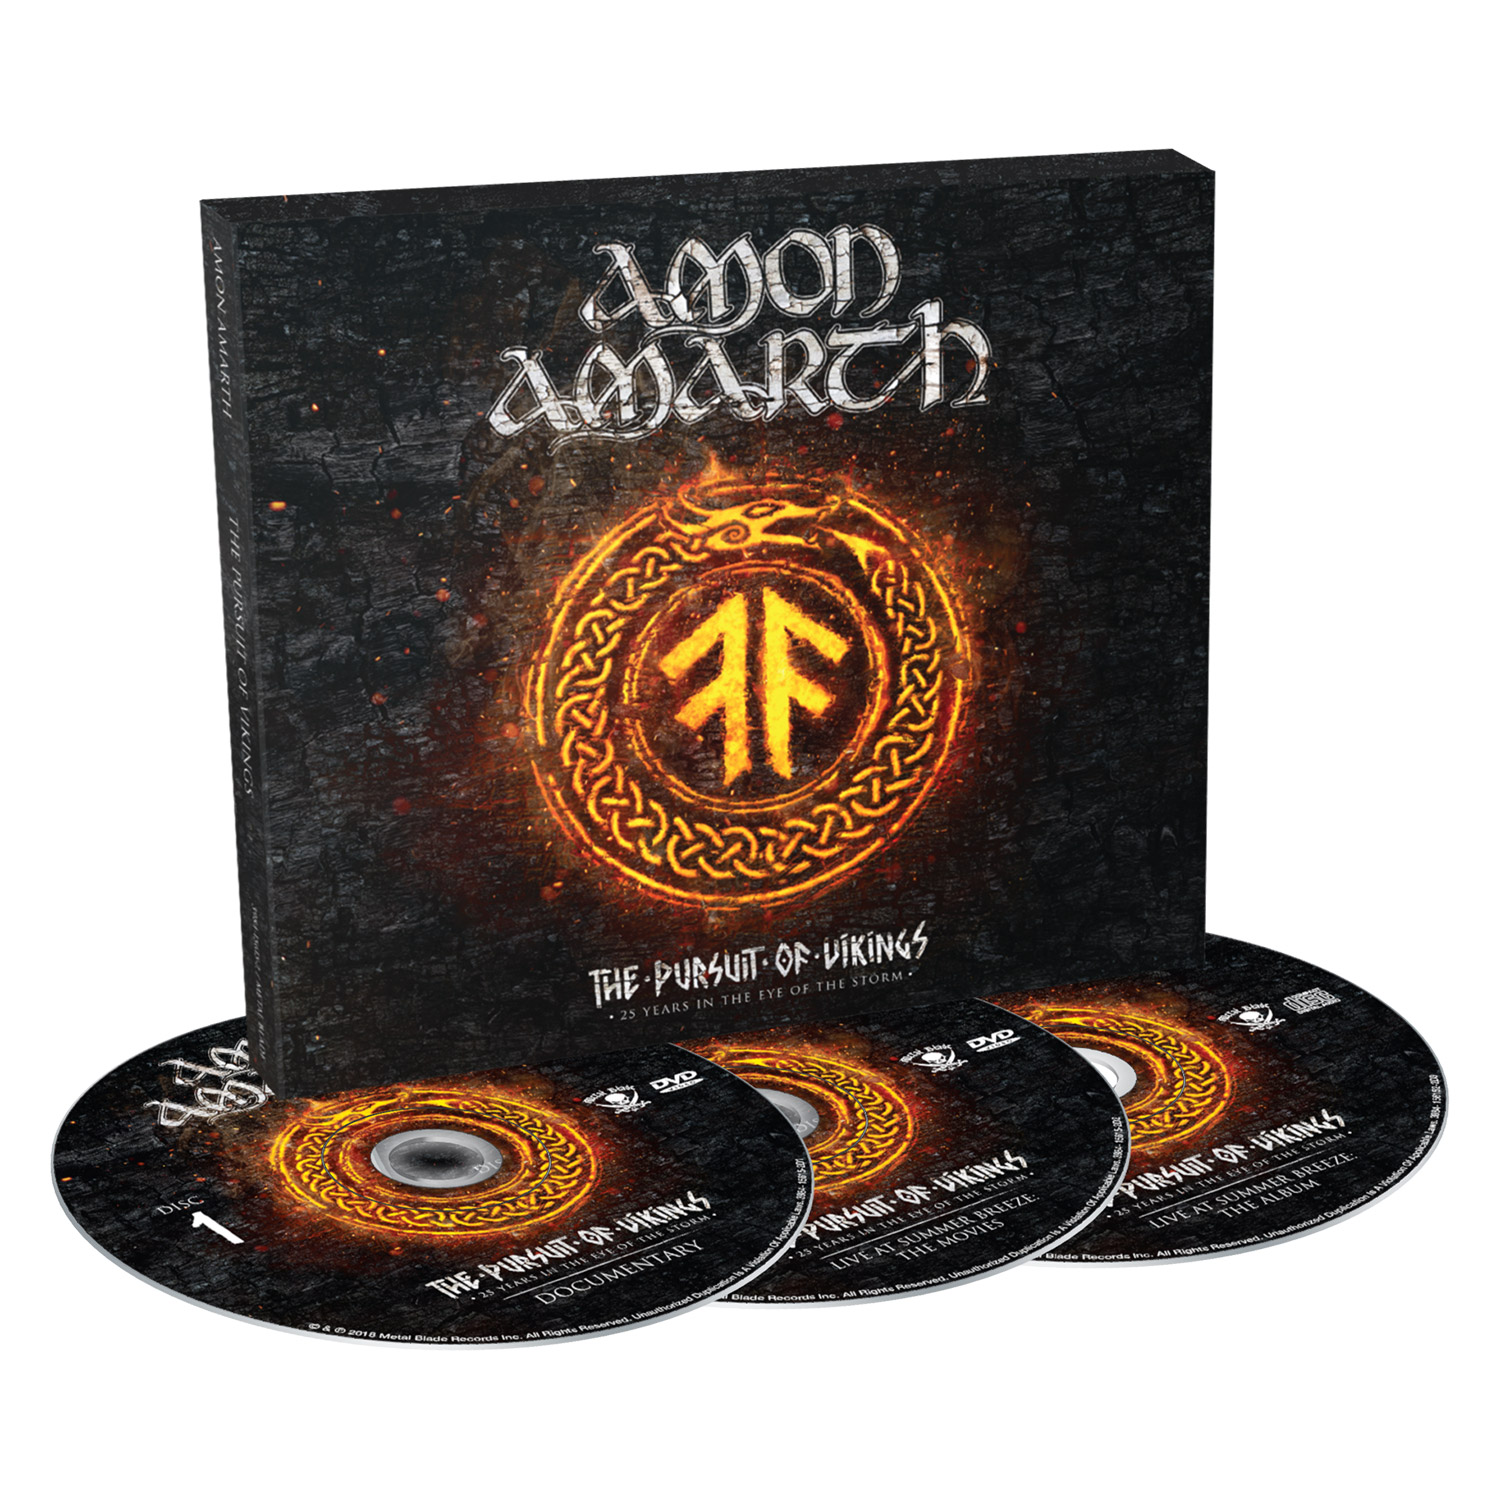 AMON AMARTH The Pursuit Of Vikings: 25 Years In The Eye Of The Storm (2018) Metal VIKING !  00f62910